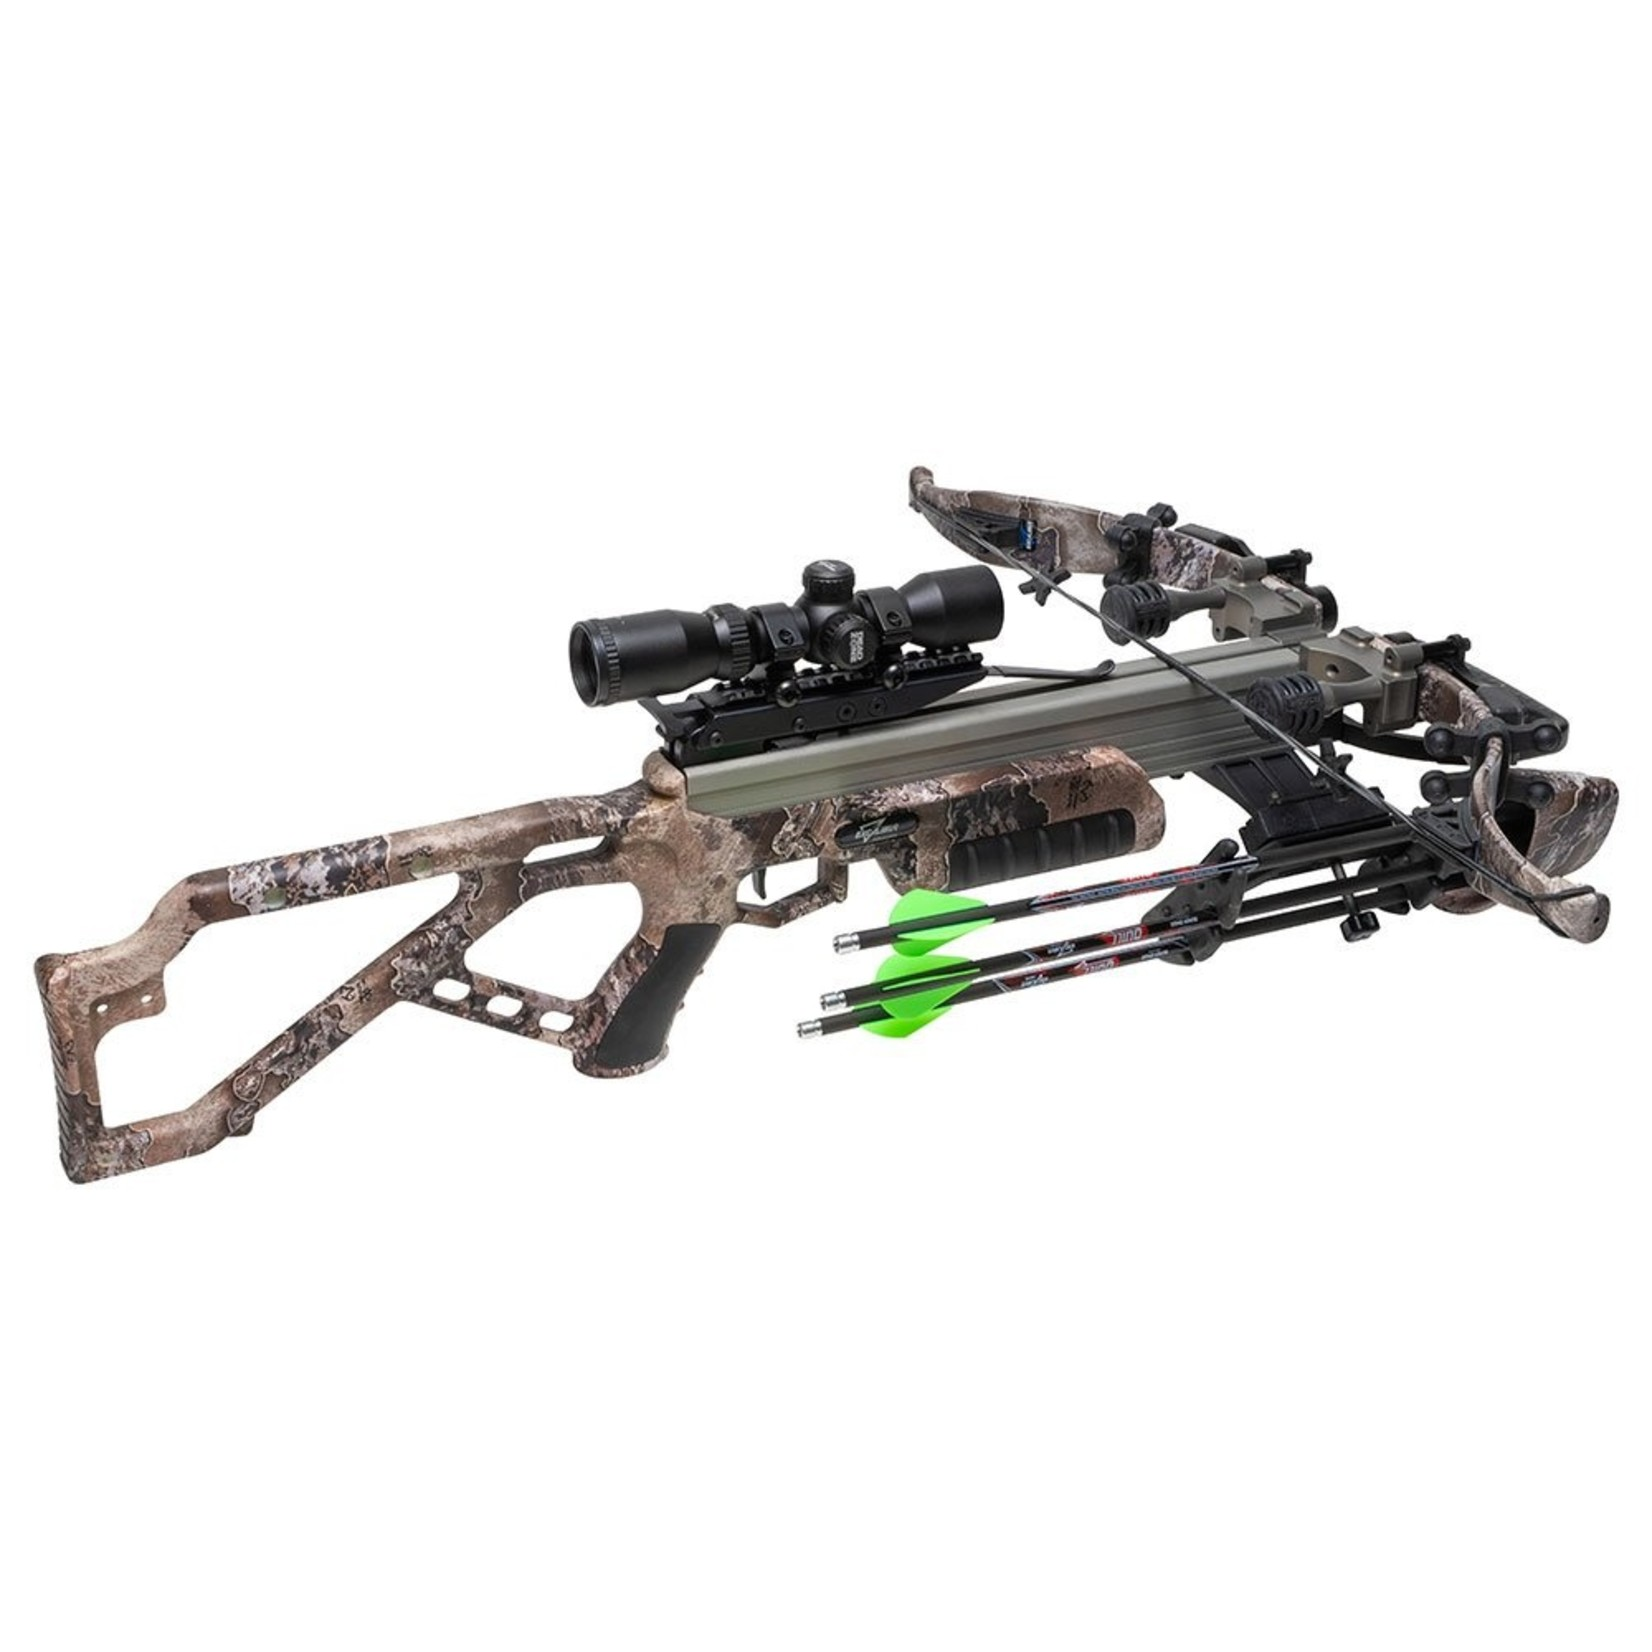 Excalibur Micro Mag 340 Crossbow Package w/ Dead Zone Scope Realtree Escape